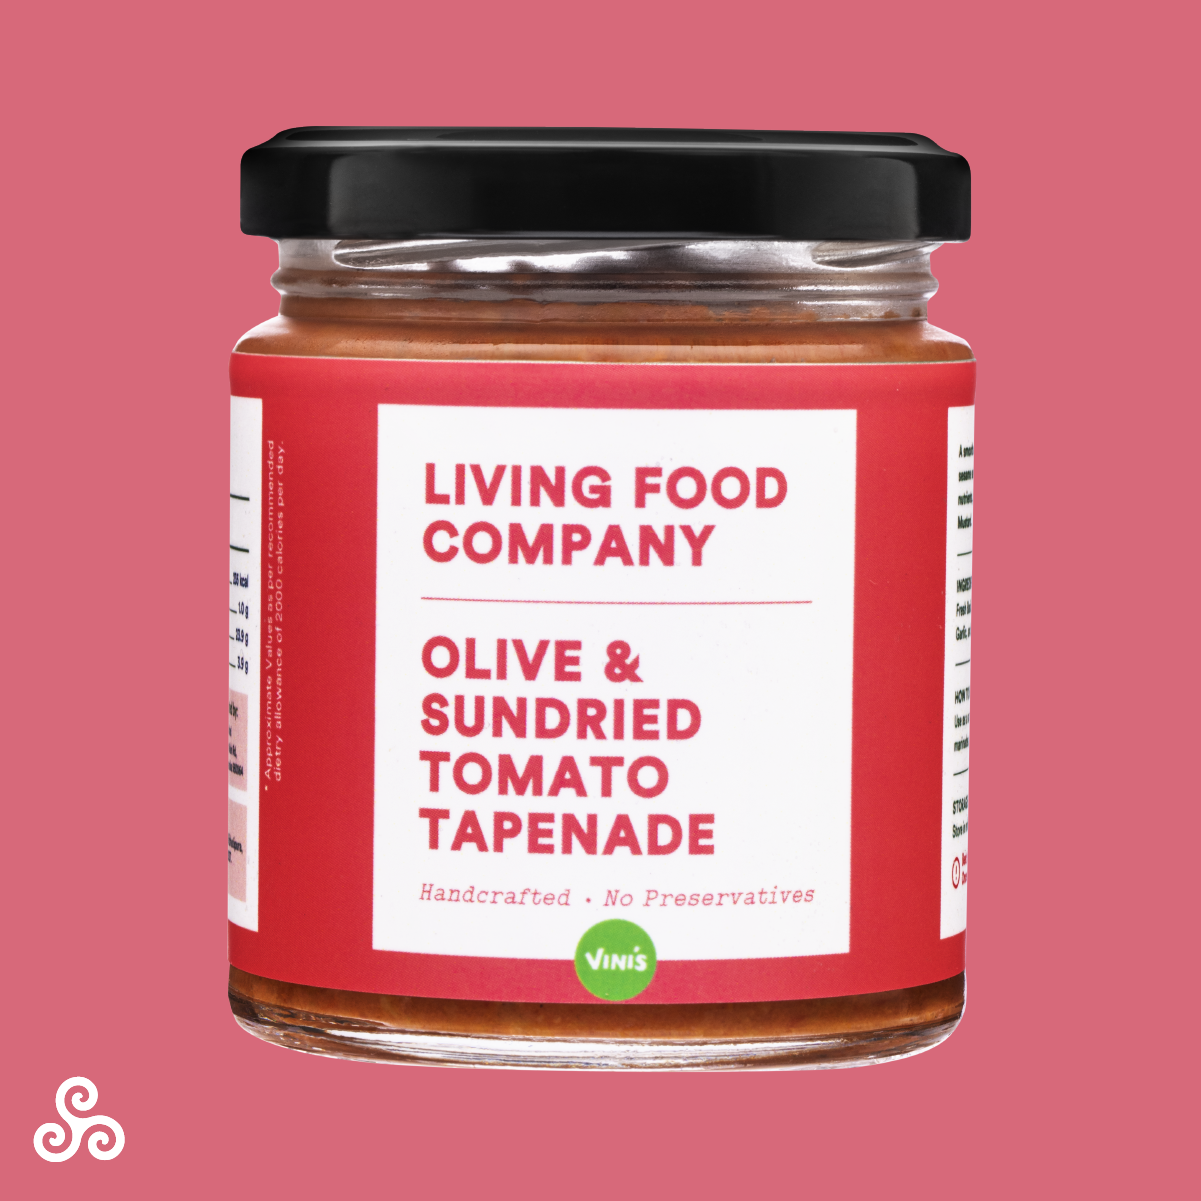 A beautiful spread made with fresh, real olives and premium sun-dried tomatoes for a tangy, umami flavour. Handcrafted with no preservatives, additives or artificial ingredients.